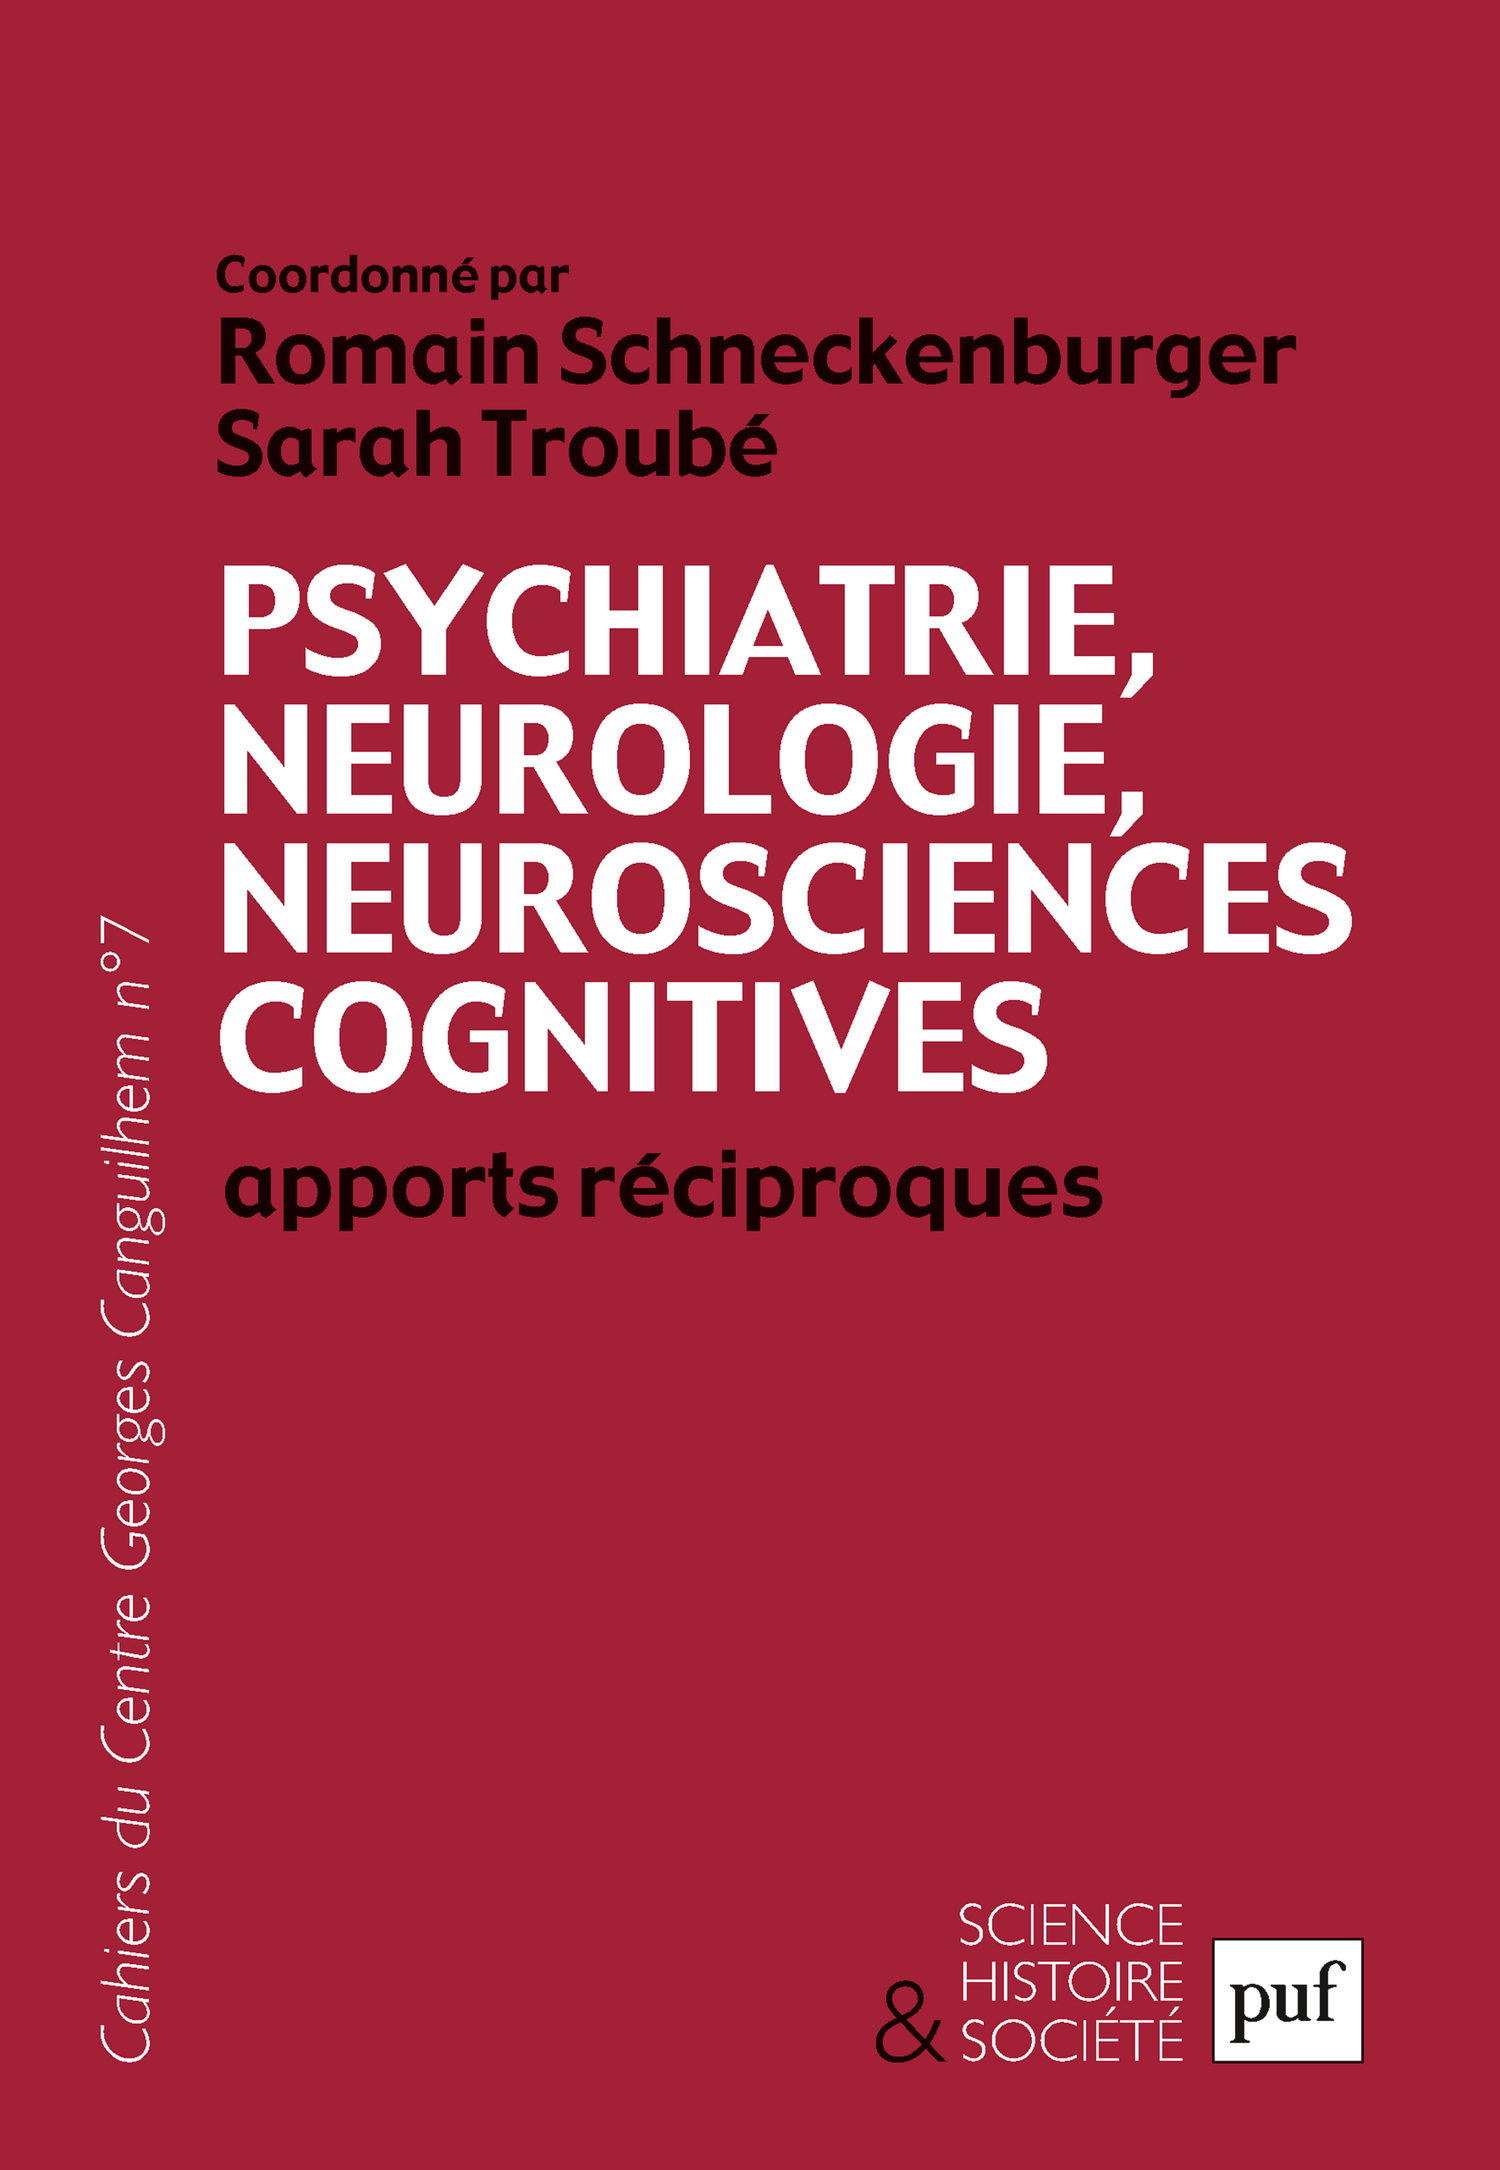 Psychiatrie, neurologie, neurosciences cognitives. Apports réciproques De Sarah Troubé et Romain Schneckenburger - Presses Universitaires de France